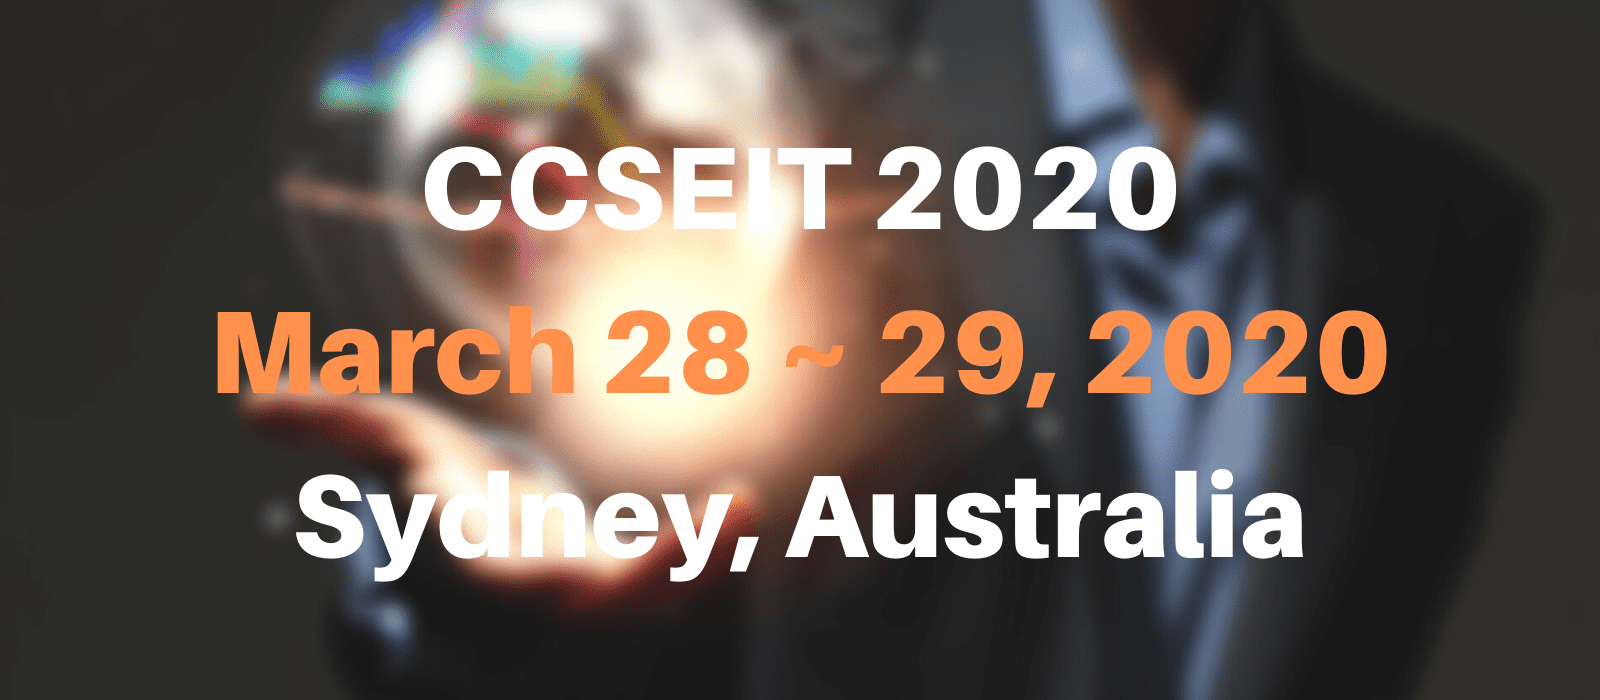 10th International Conference on Computer Science, Engineering and Information Technology (CCSEIT 2020)